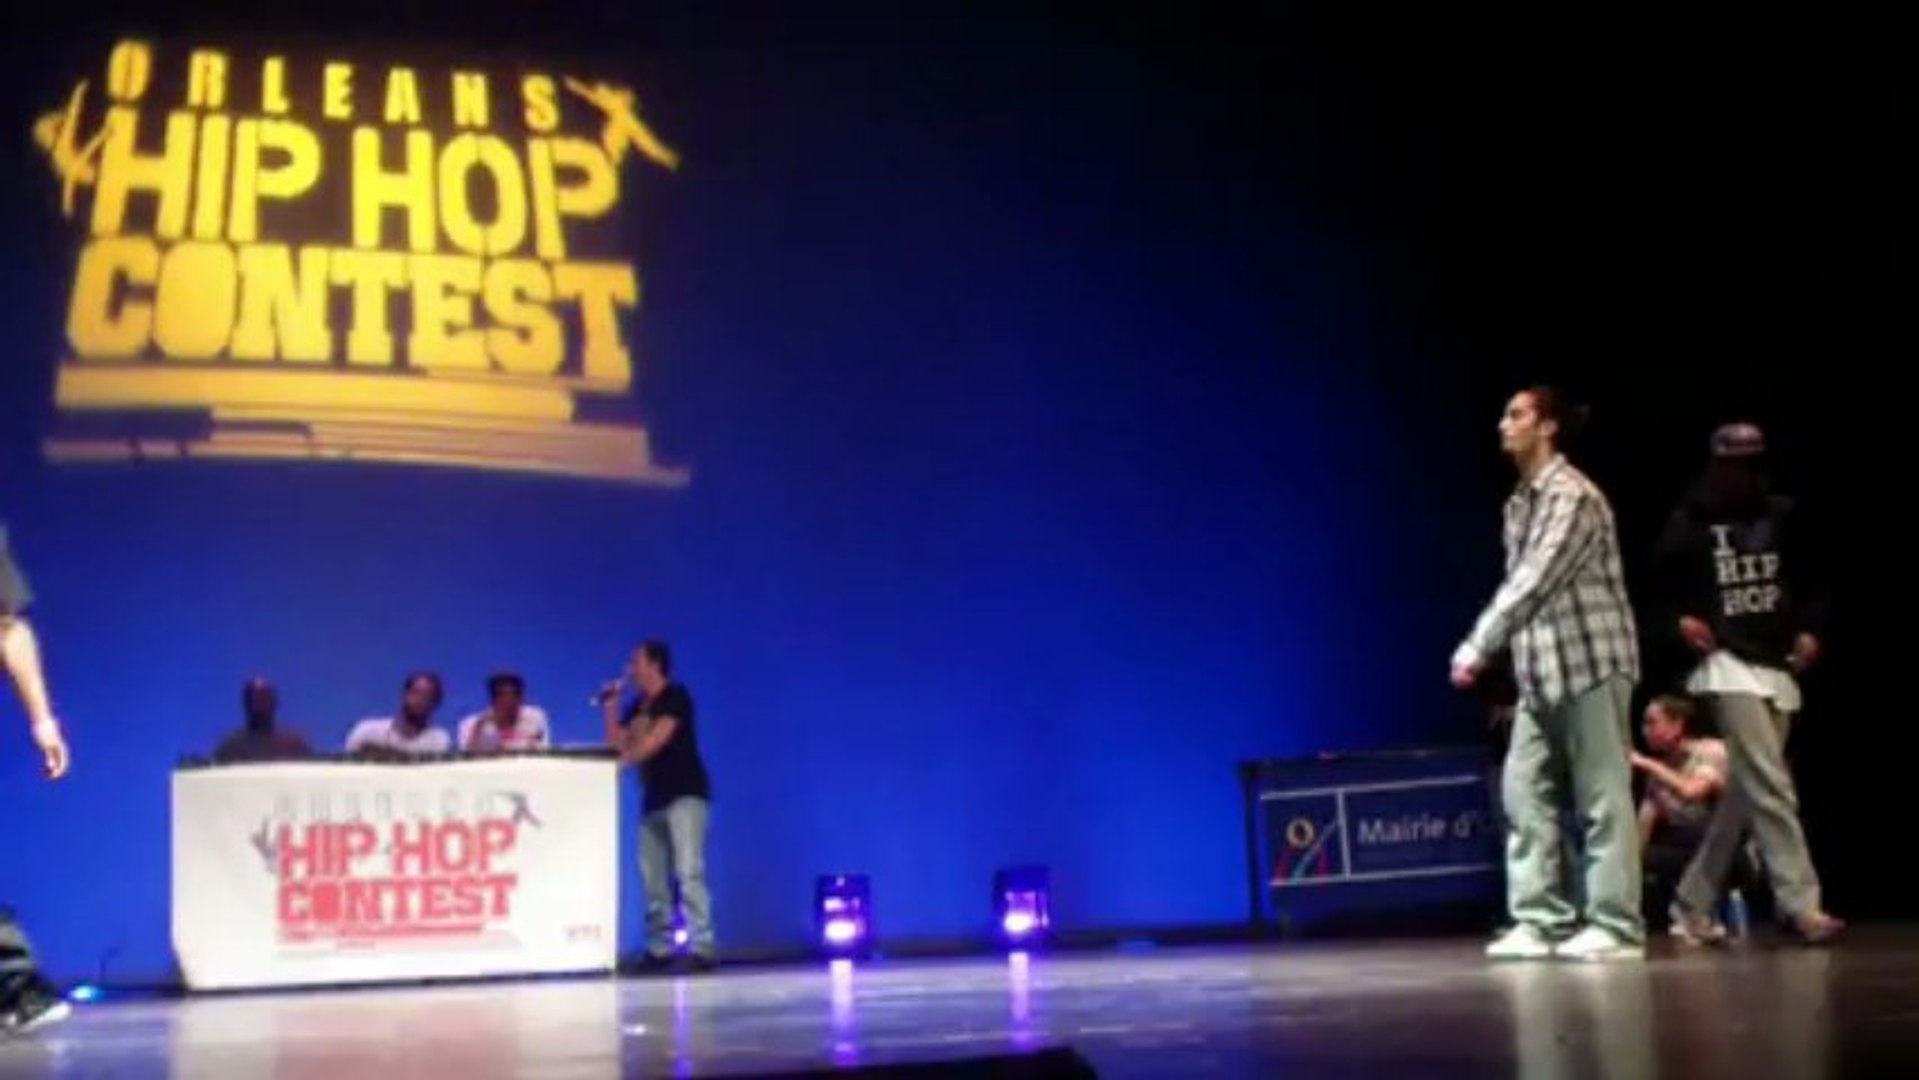 Hip Hop Contest 2013 - 7 to Smoke Hip Hop